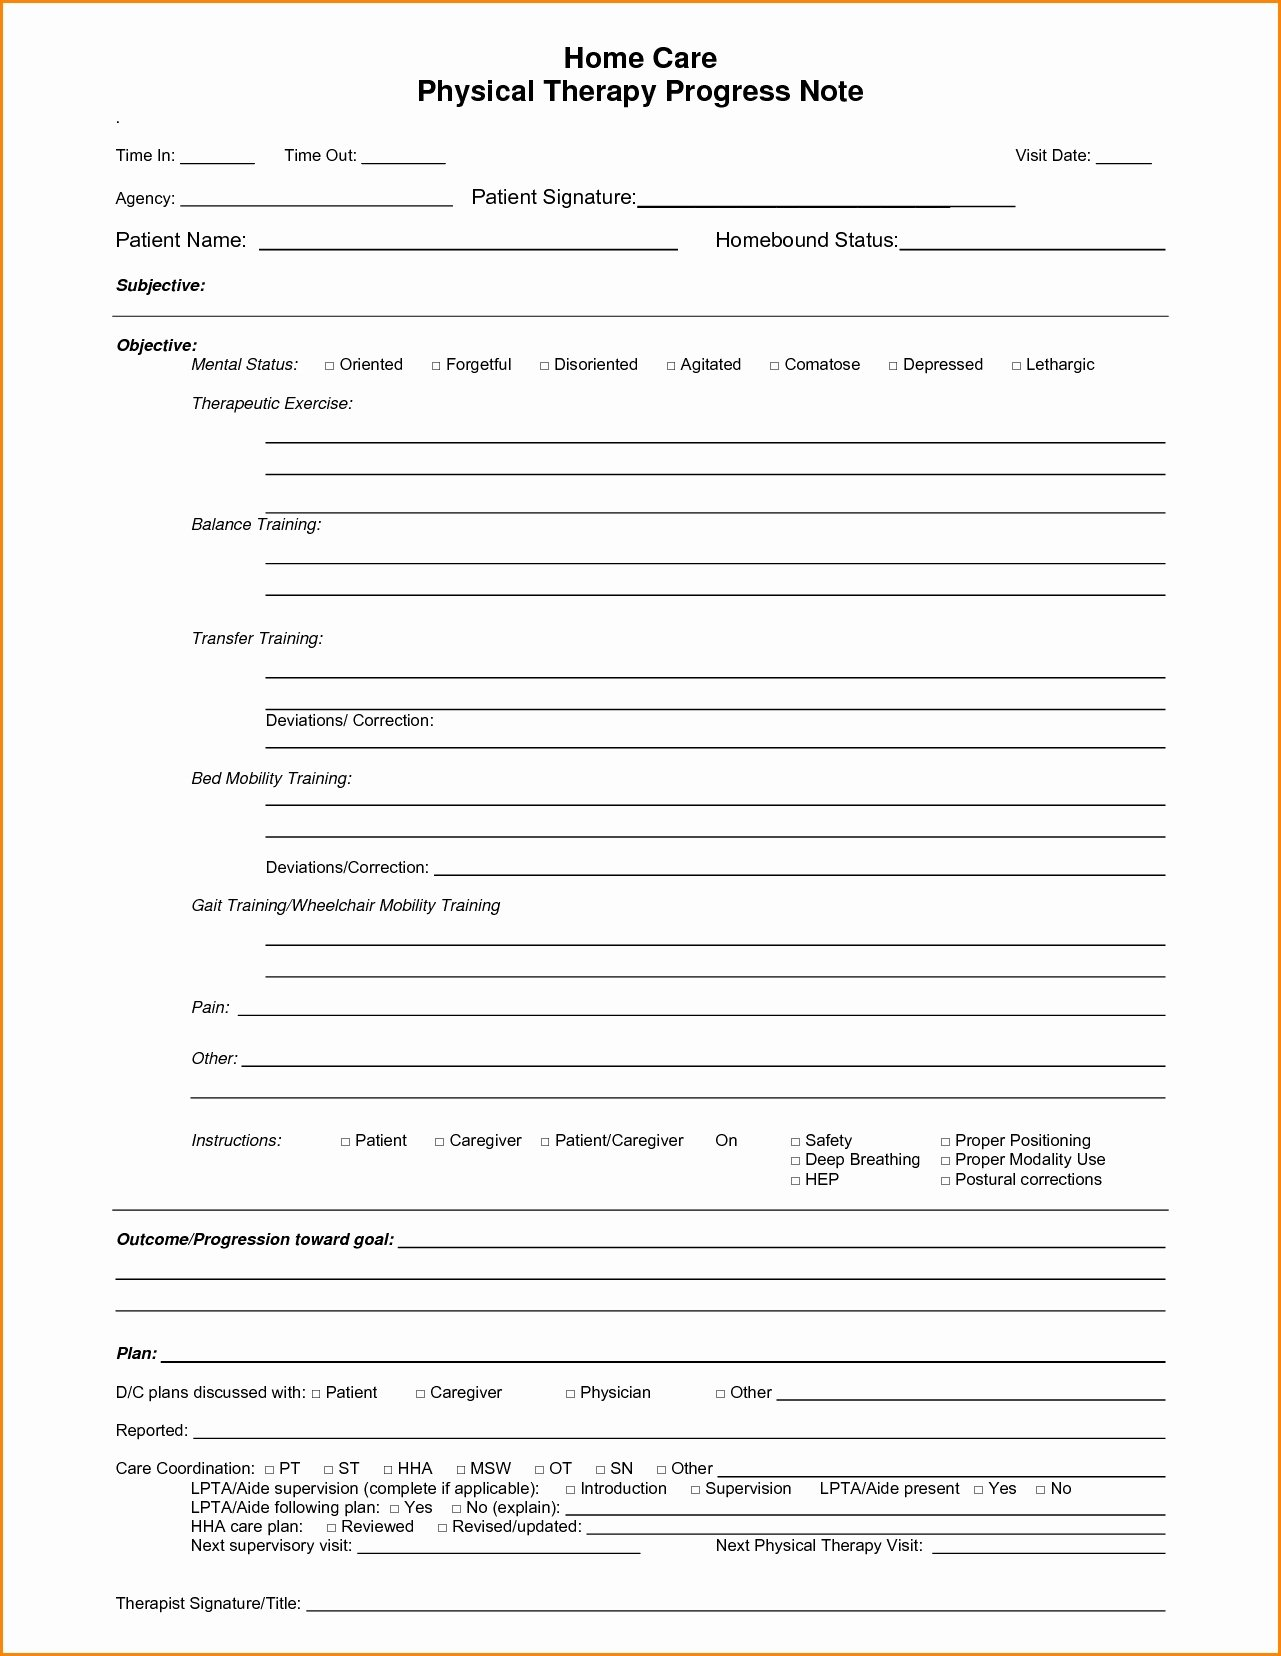 Group therapy Note Template Unique Chest Physiotherapy and Airway Clearance Devices Medical Clinical Policy Bulletins